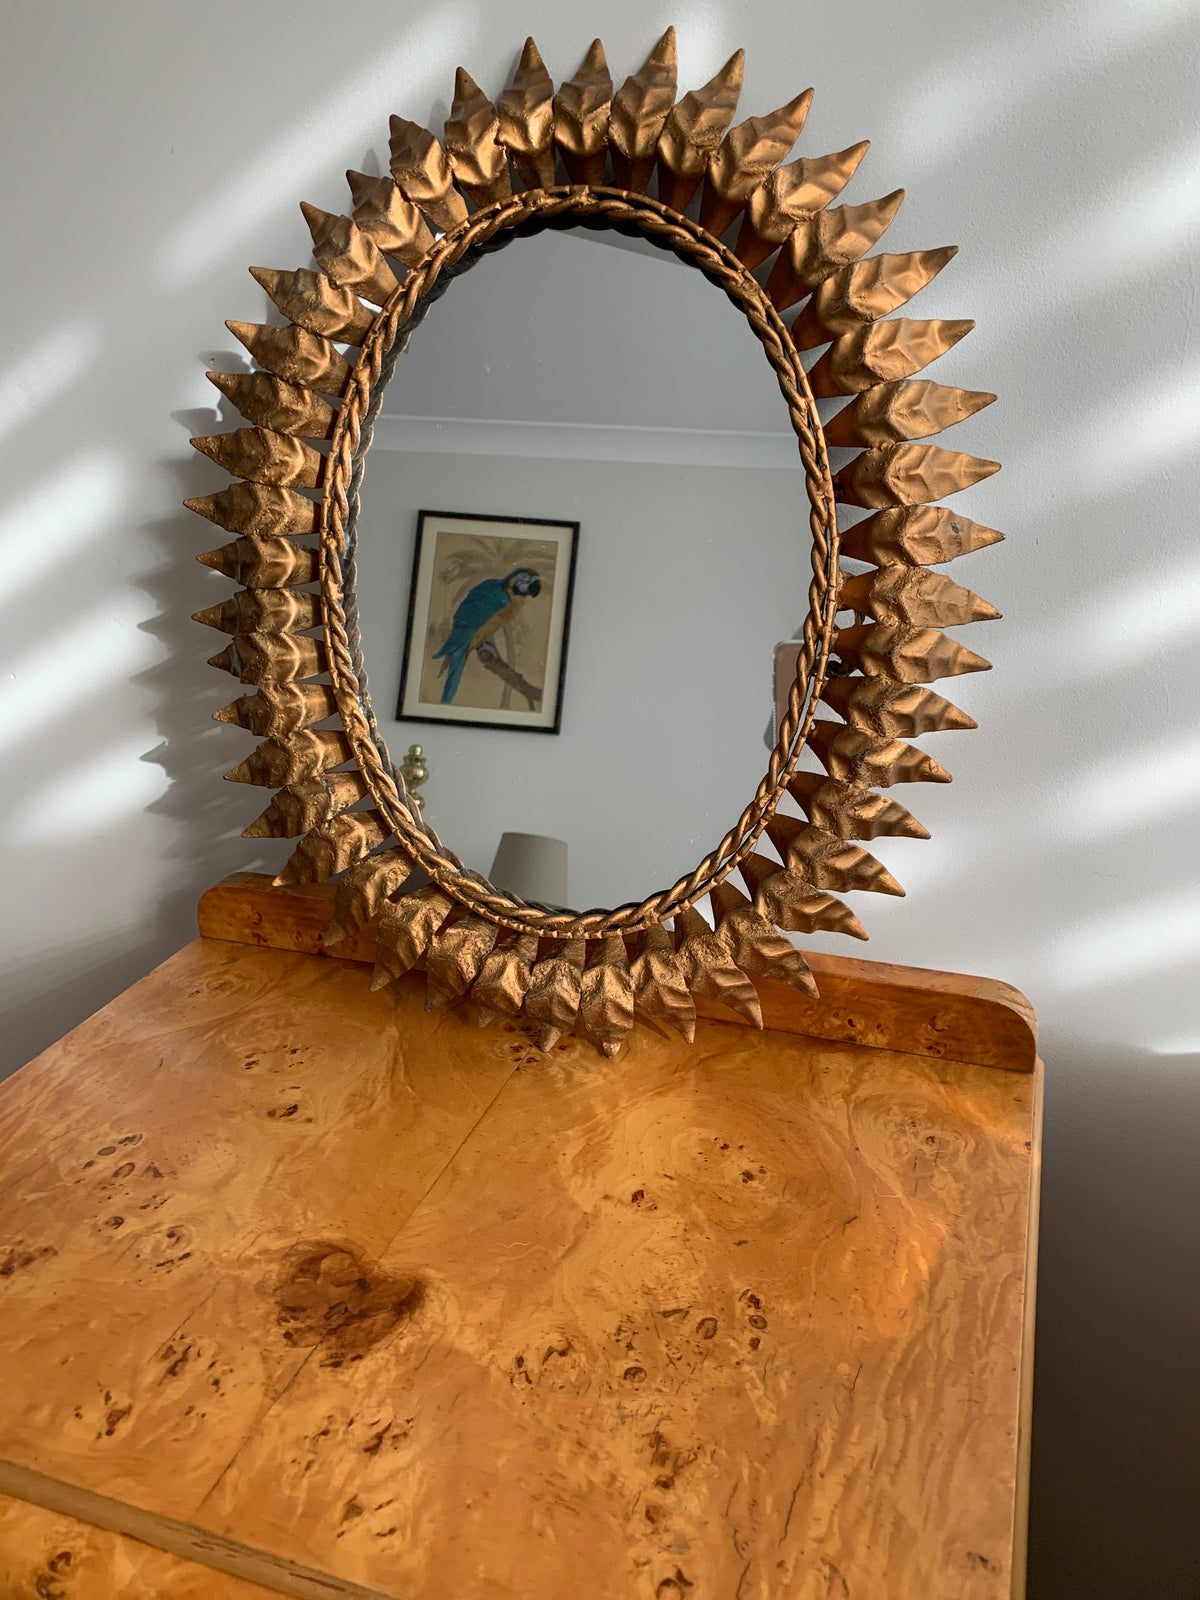 Original Antique 1920s Gilded Starburst Mirror